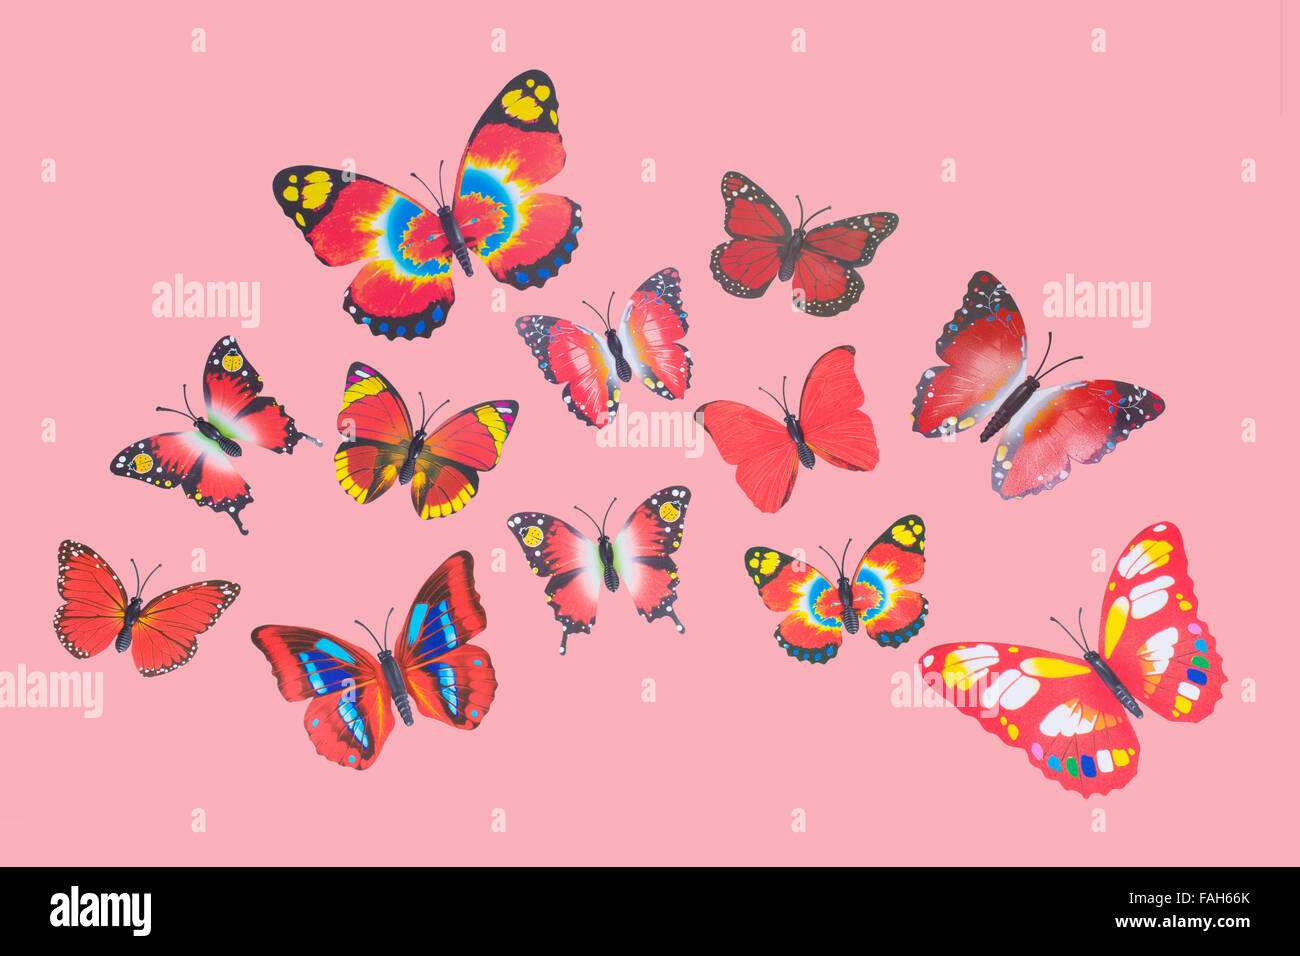 Collection of Red Fantasy Butterflies Clip Art - Stock Image